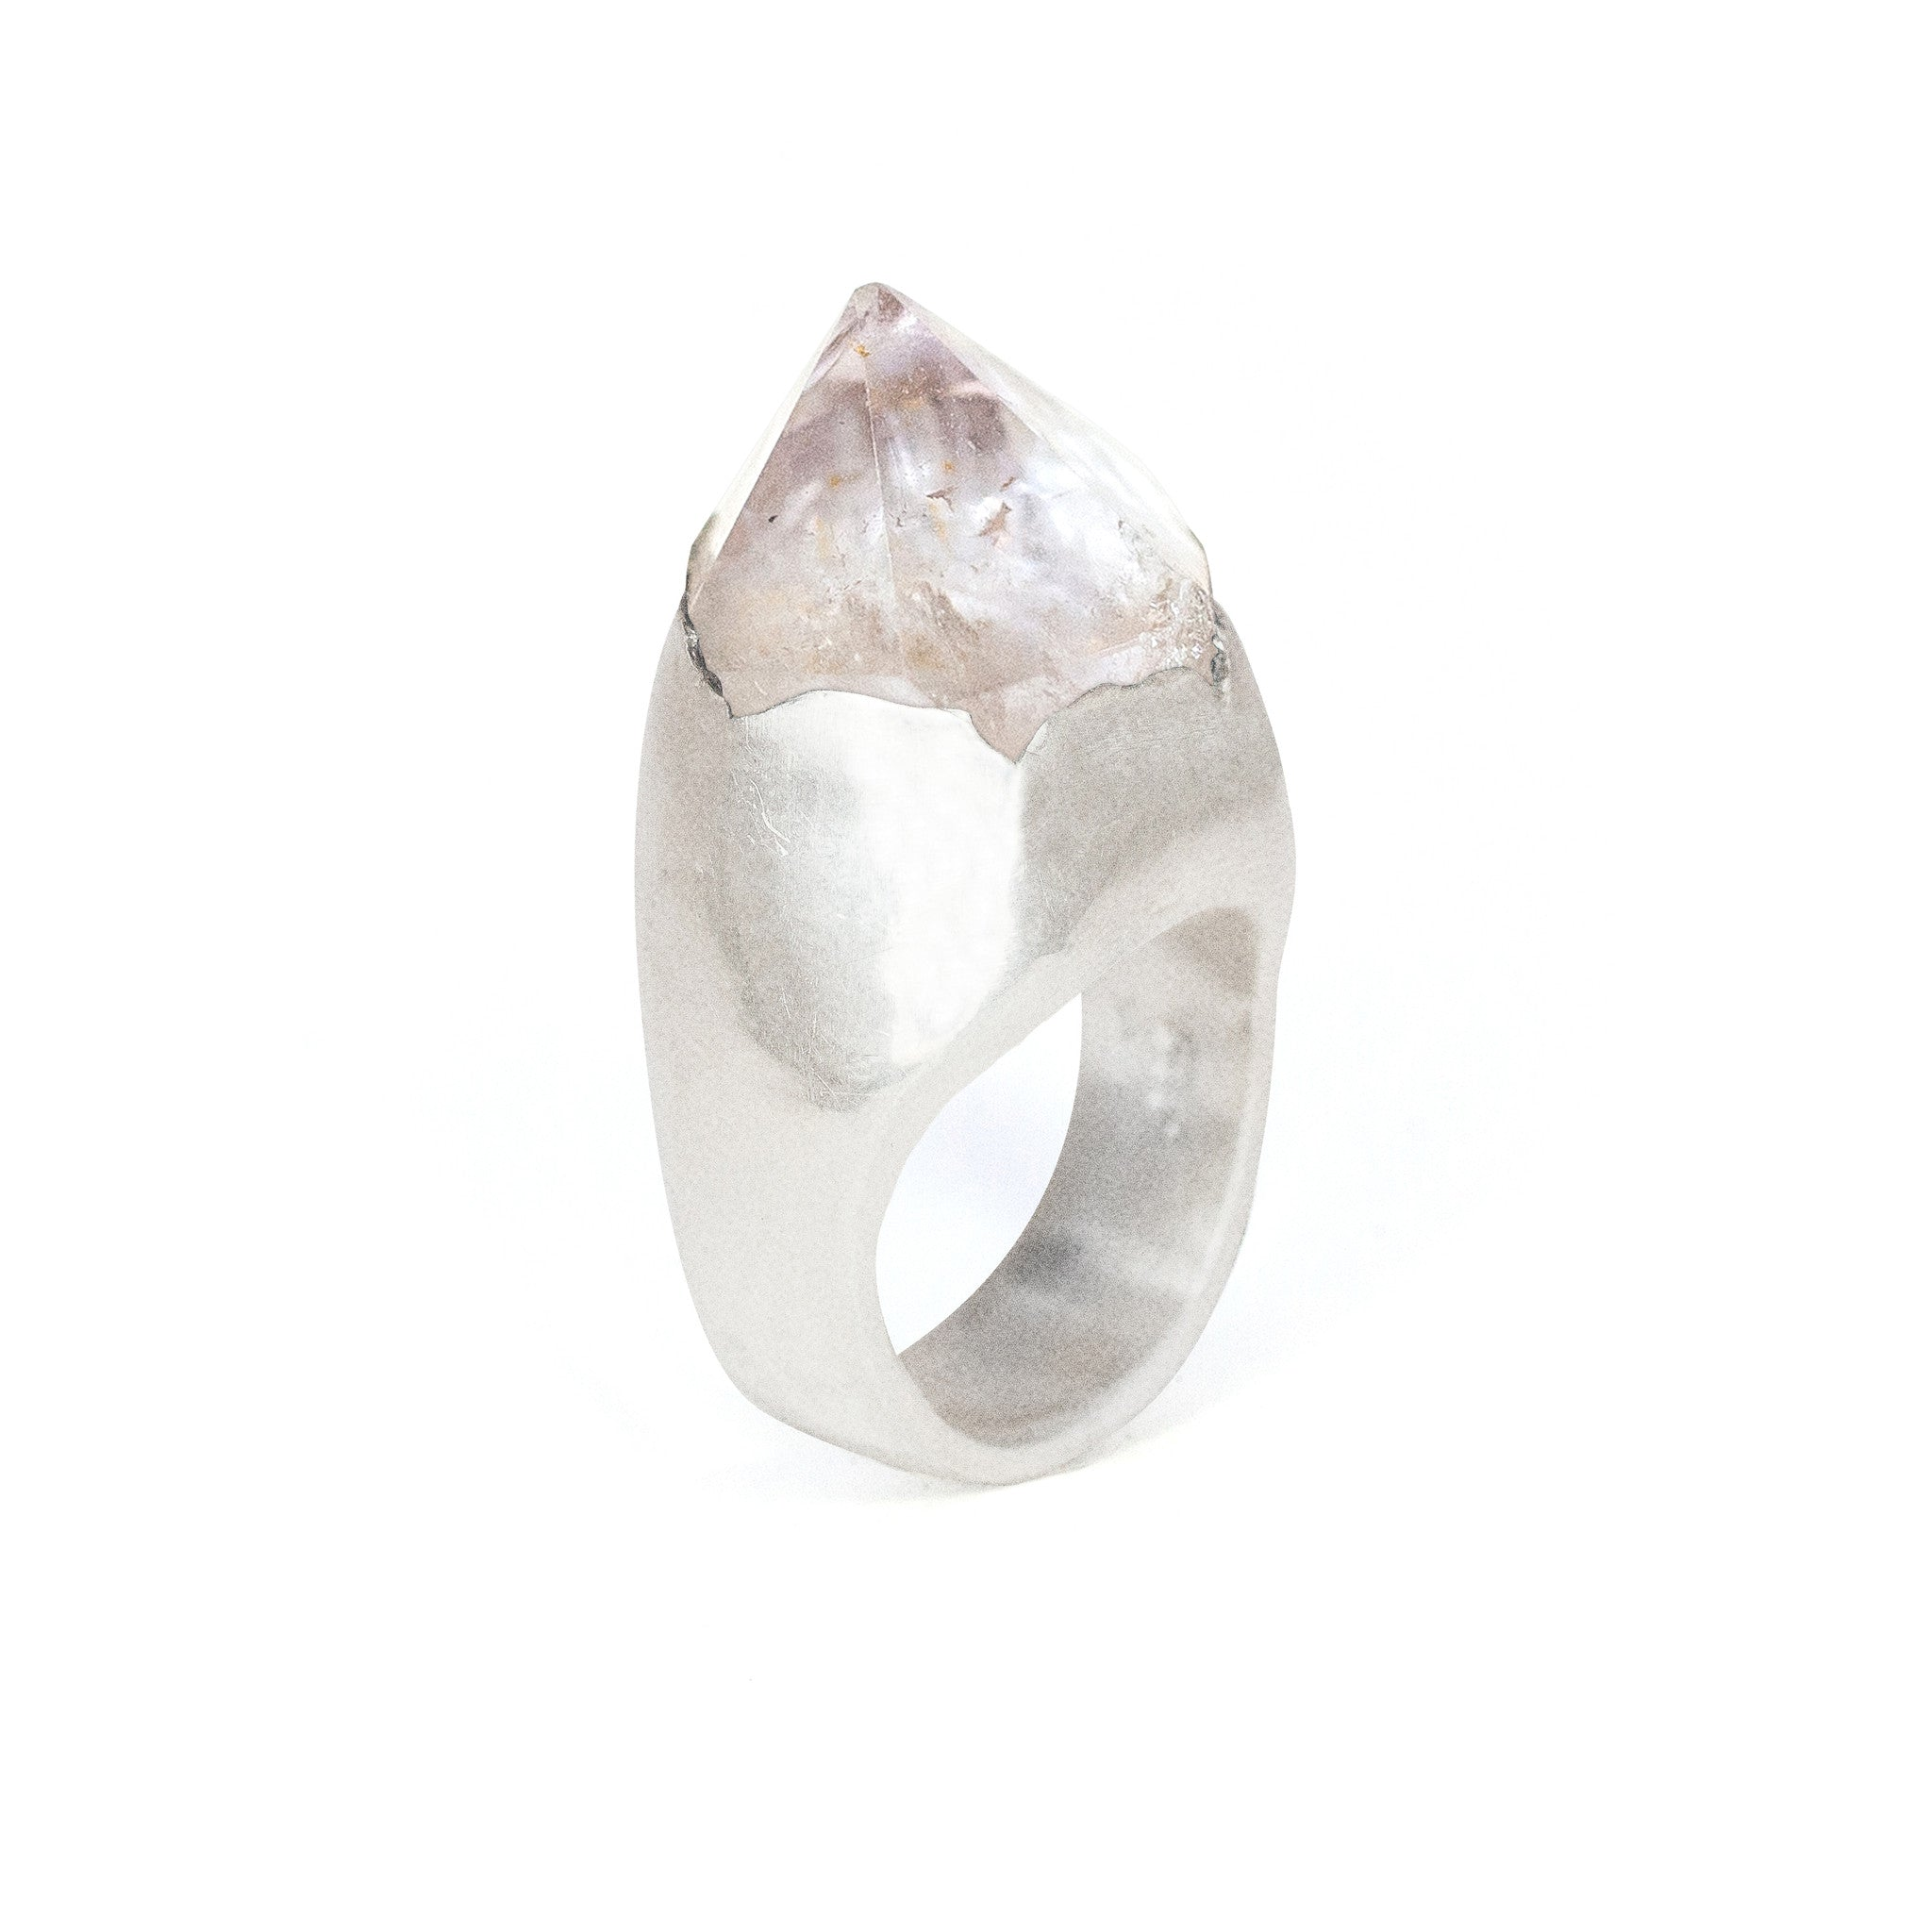 GRAND QUARTZ SIGNATURE SOLITAIRE